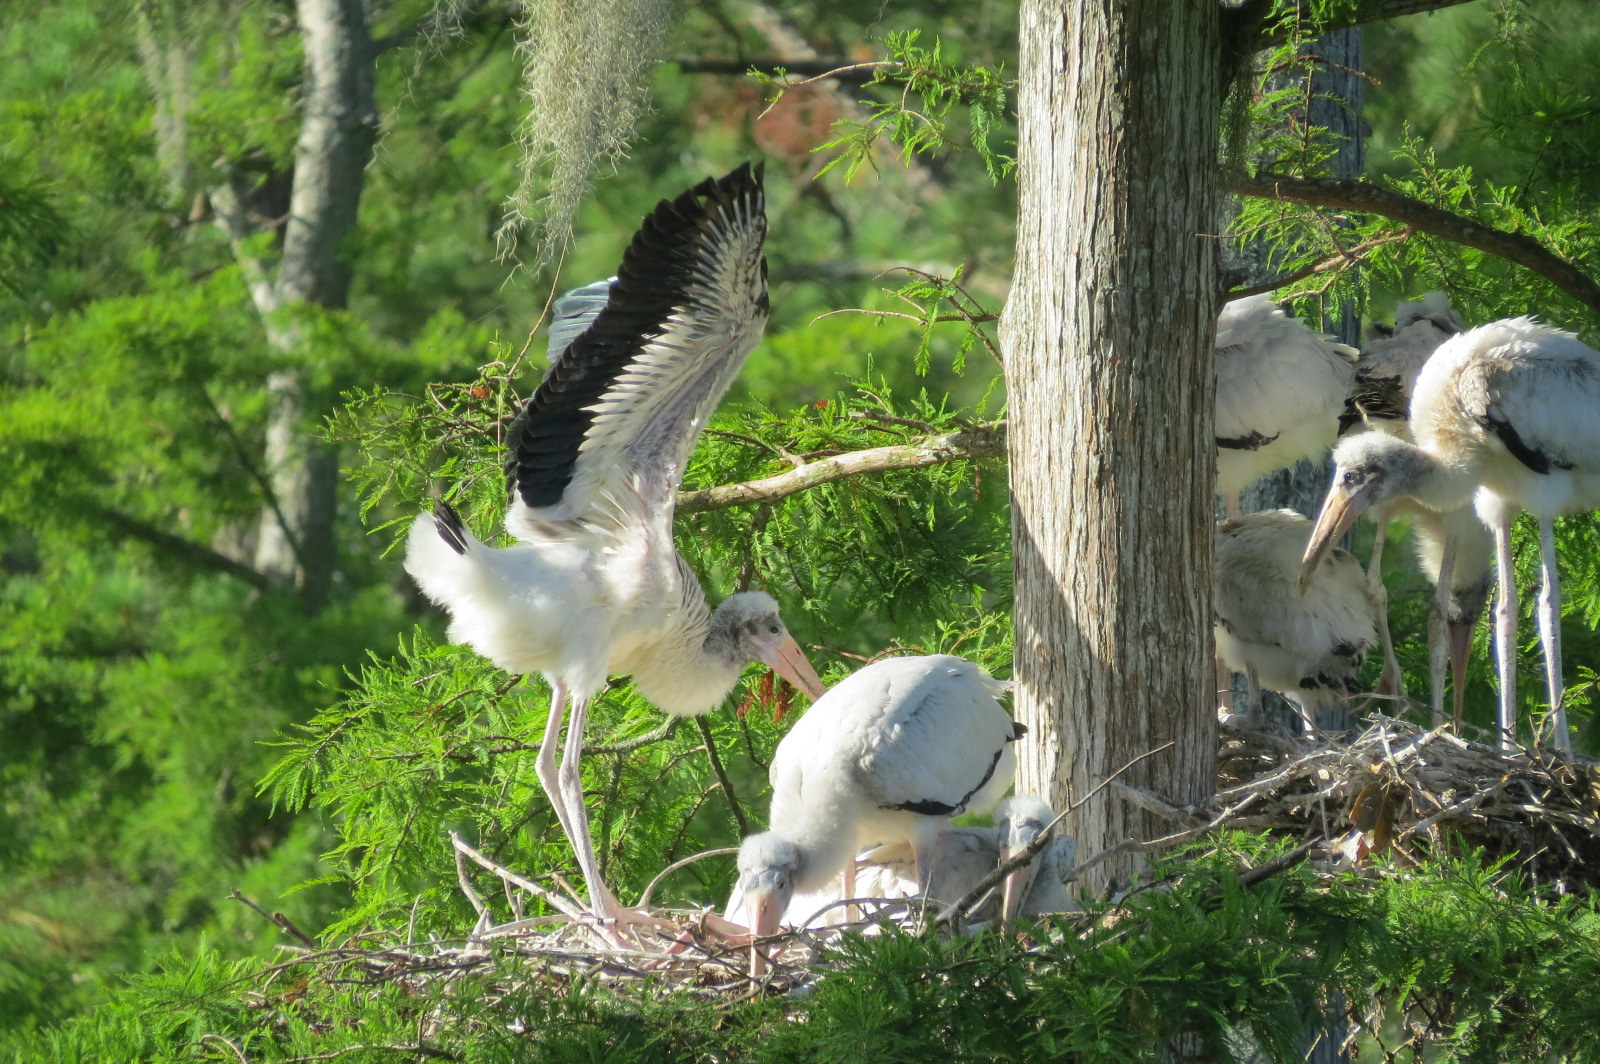 A juvenile wood stork stretches its wings. (Photo: Christy Hand/SCDNR)